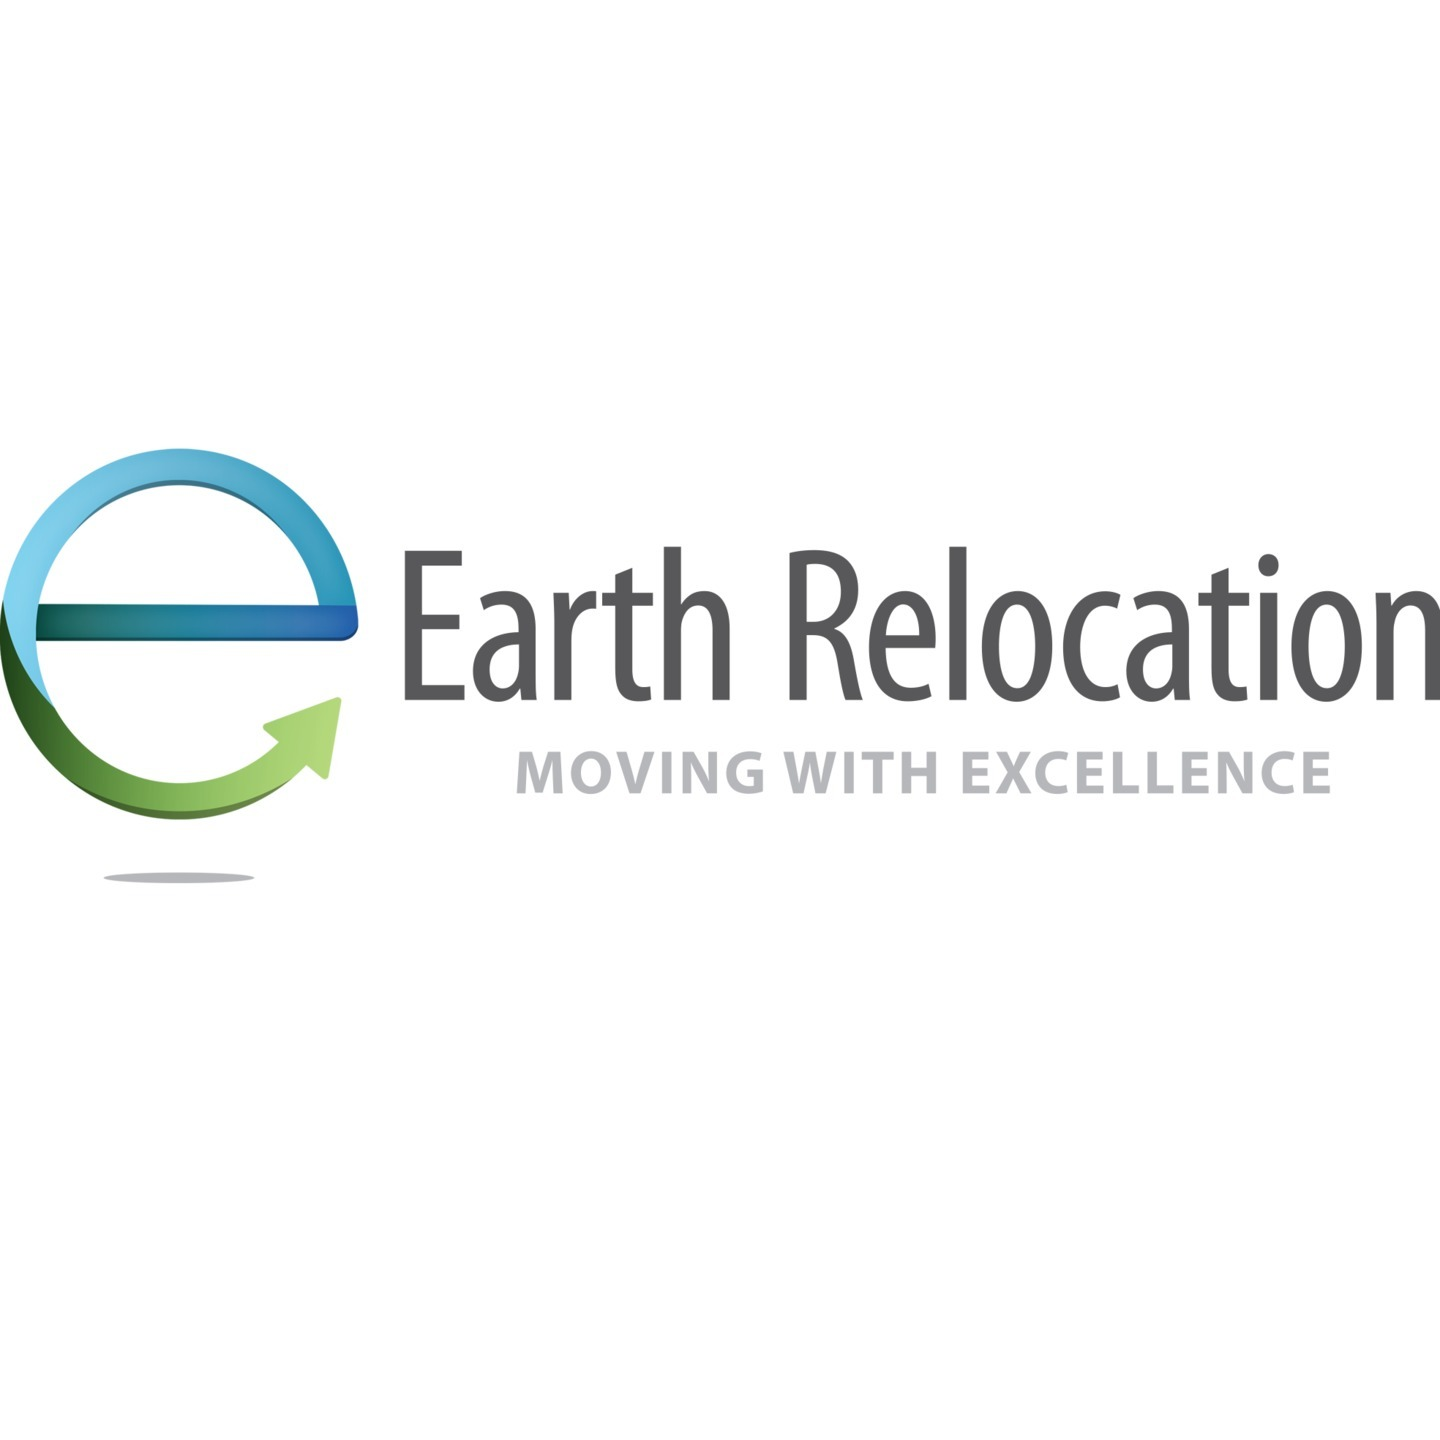 Earth Relocation (@earthrelocation) Cover Image